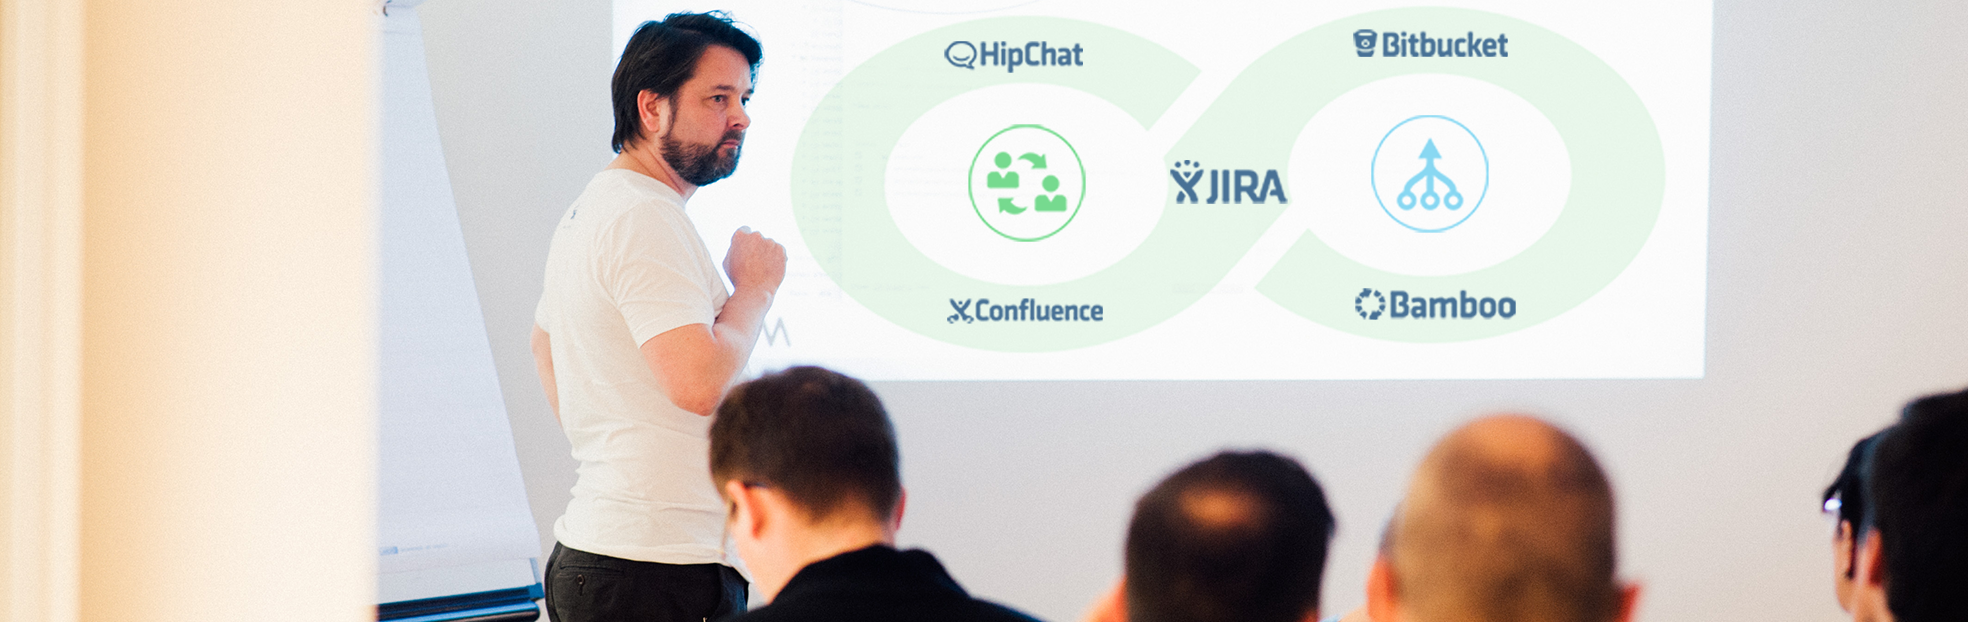 Agile & DevOps Training mit Atlassian Tools